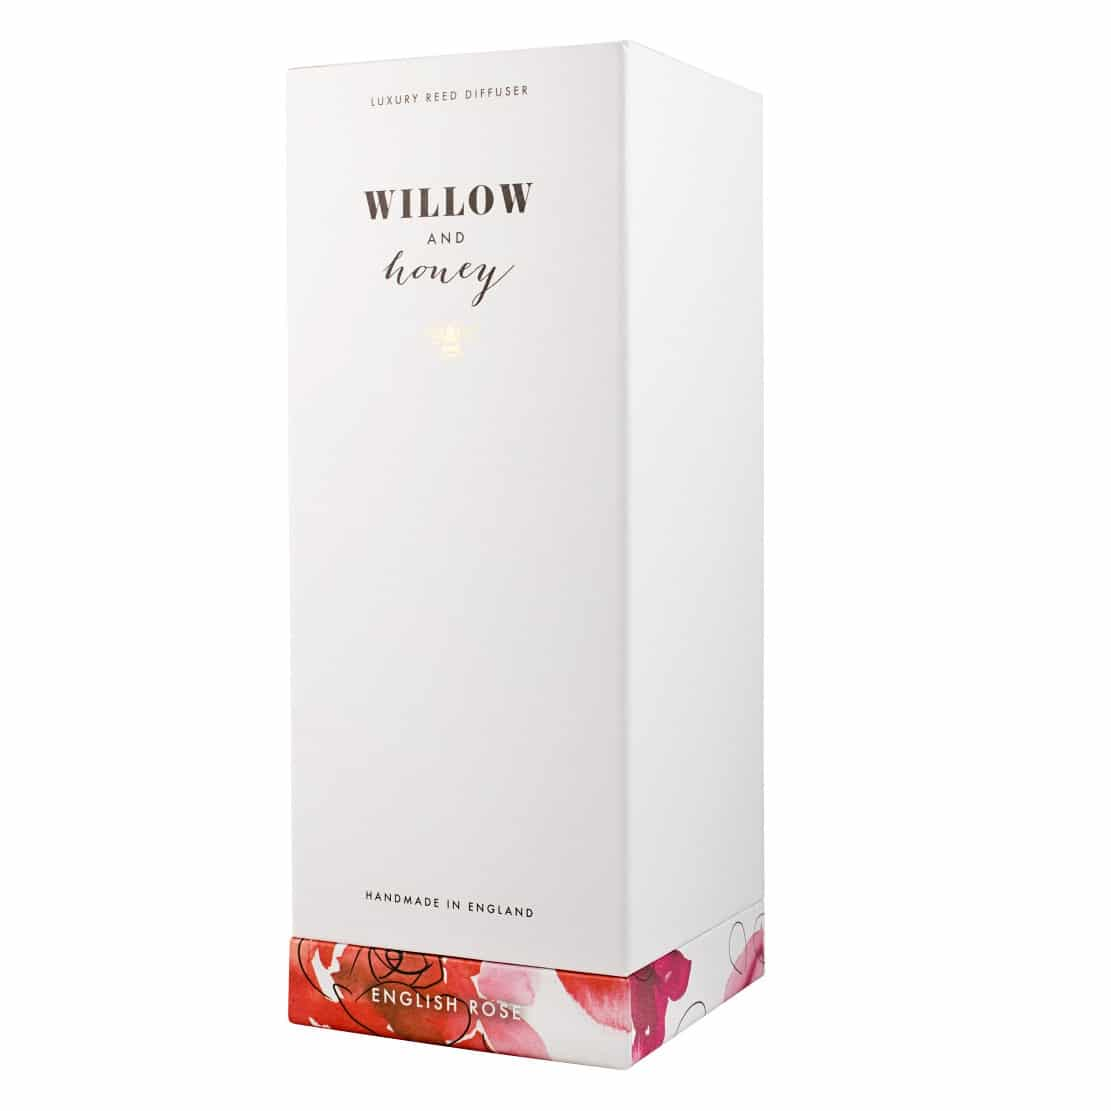 Willow and Honey English Rose Diffuser 200ml